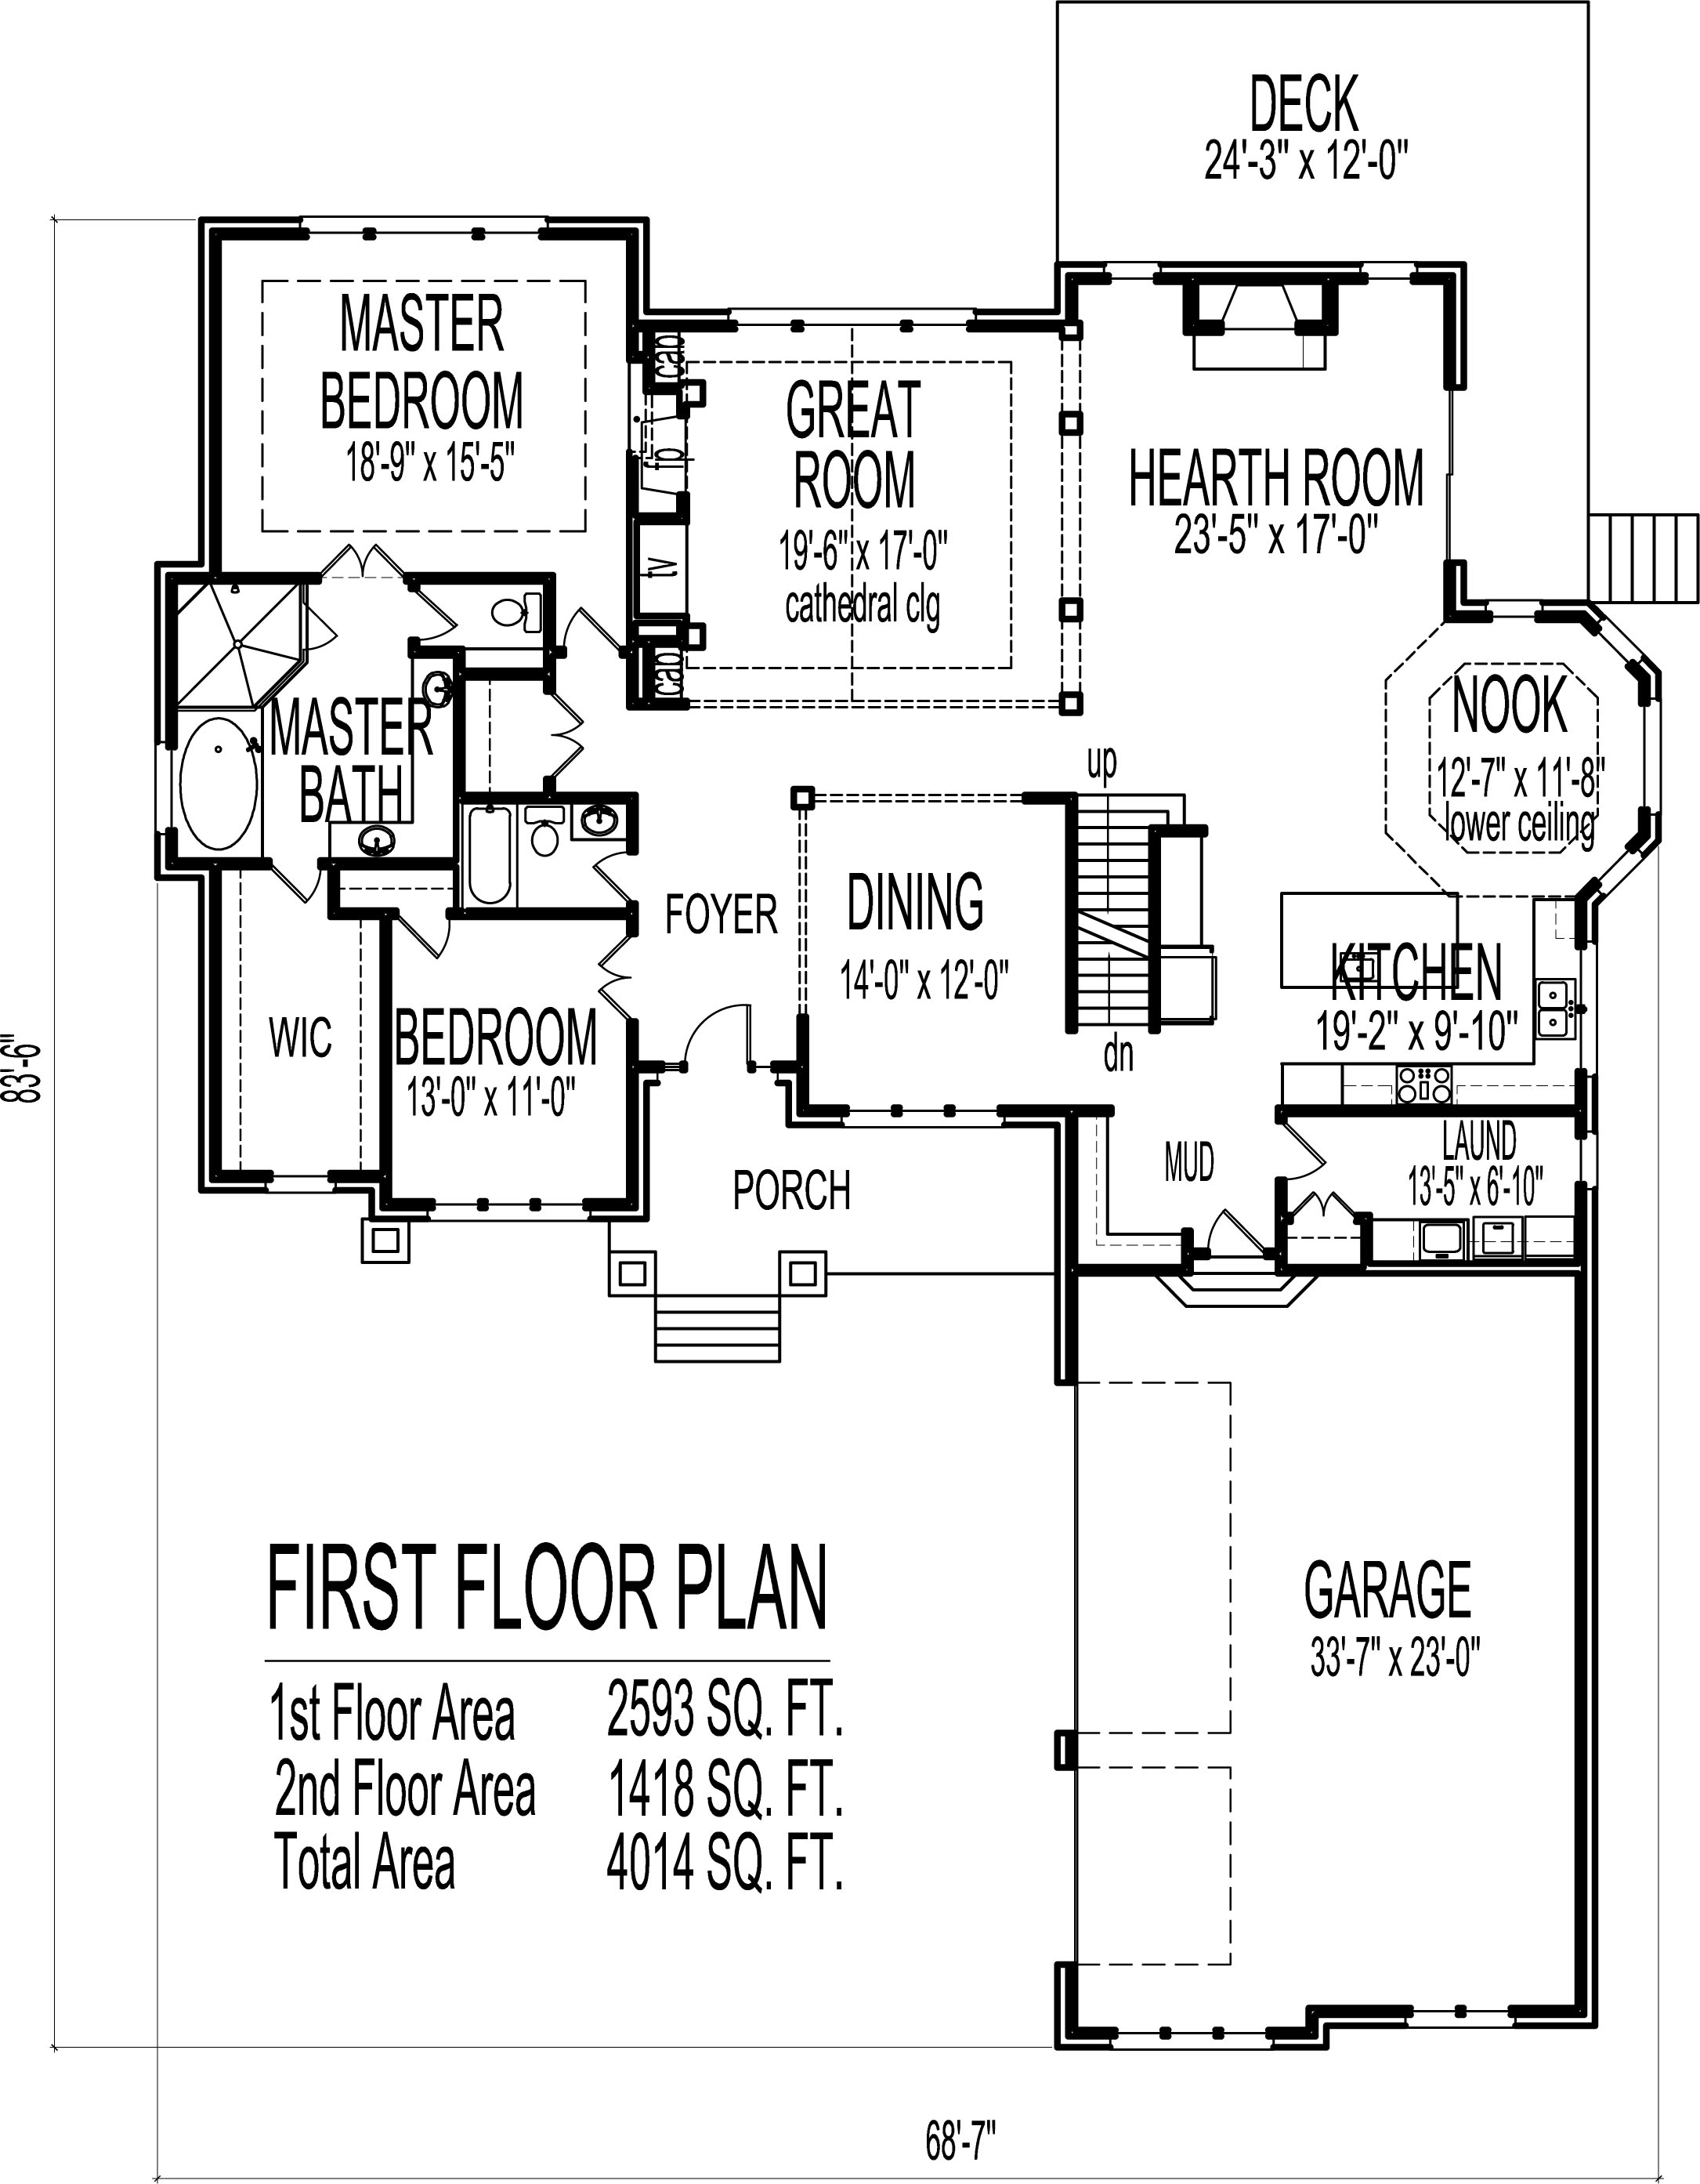 2 story house floor plans 6 bedroom craftsman home design for 6 bedroom house designs